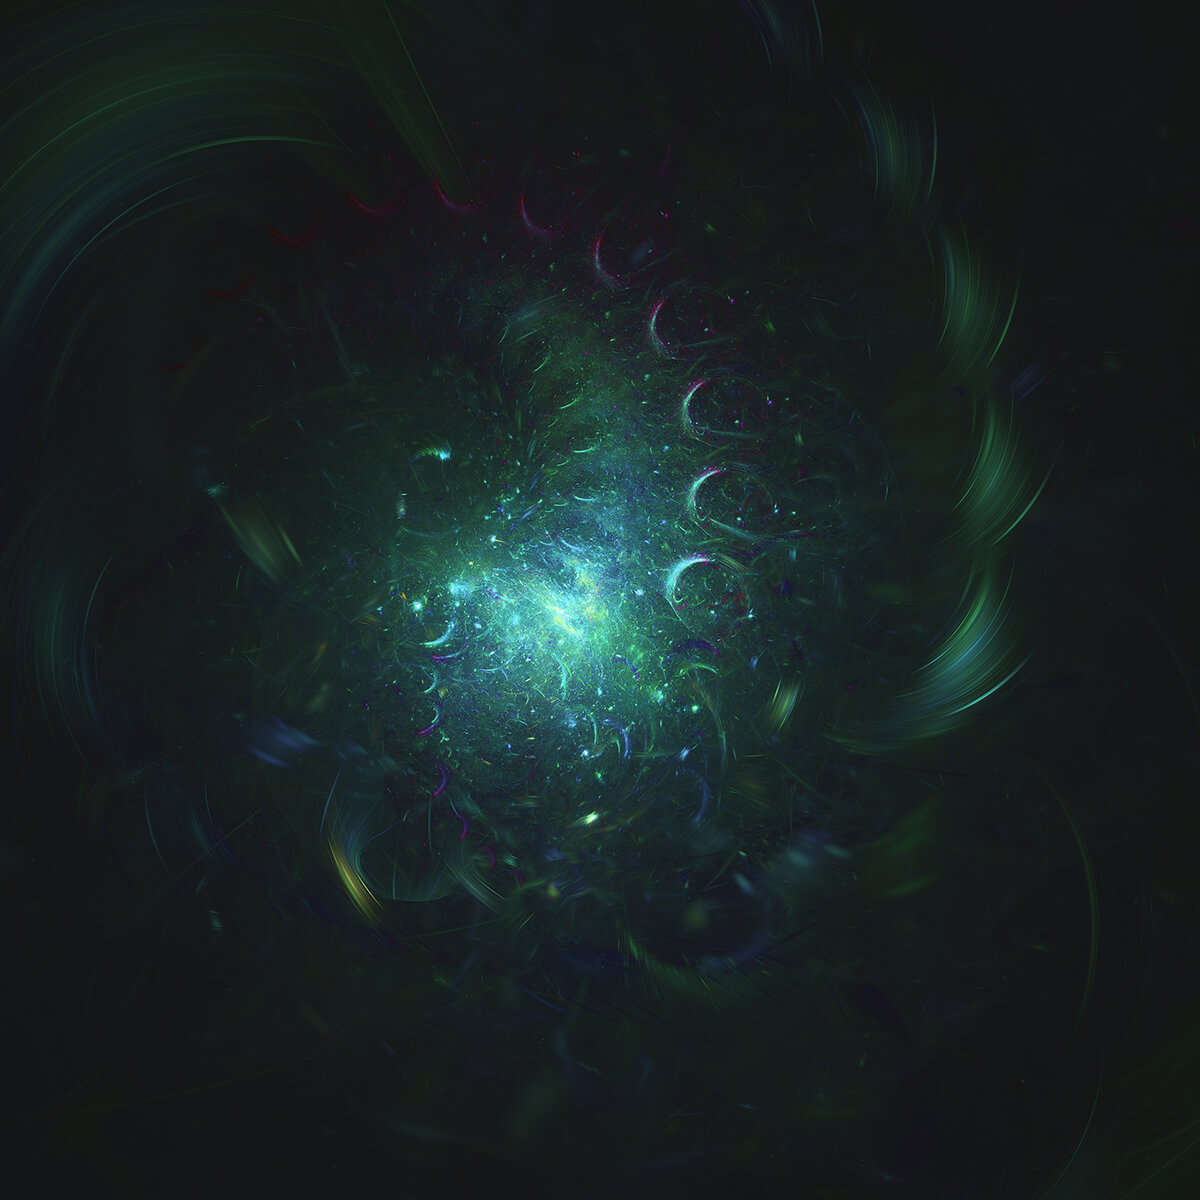 3D render of a green rotating fractal